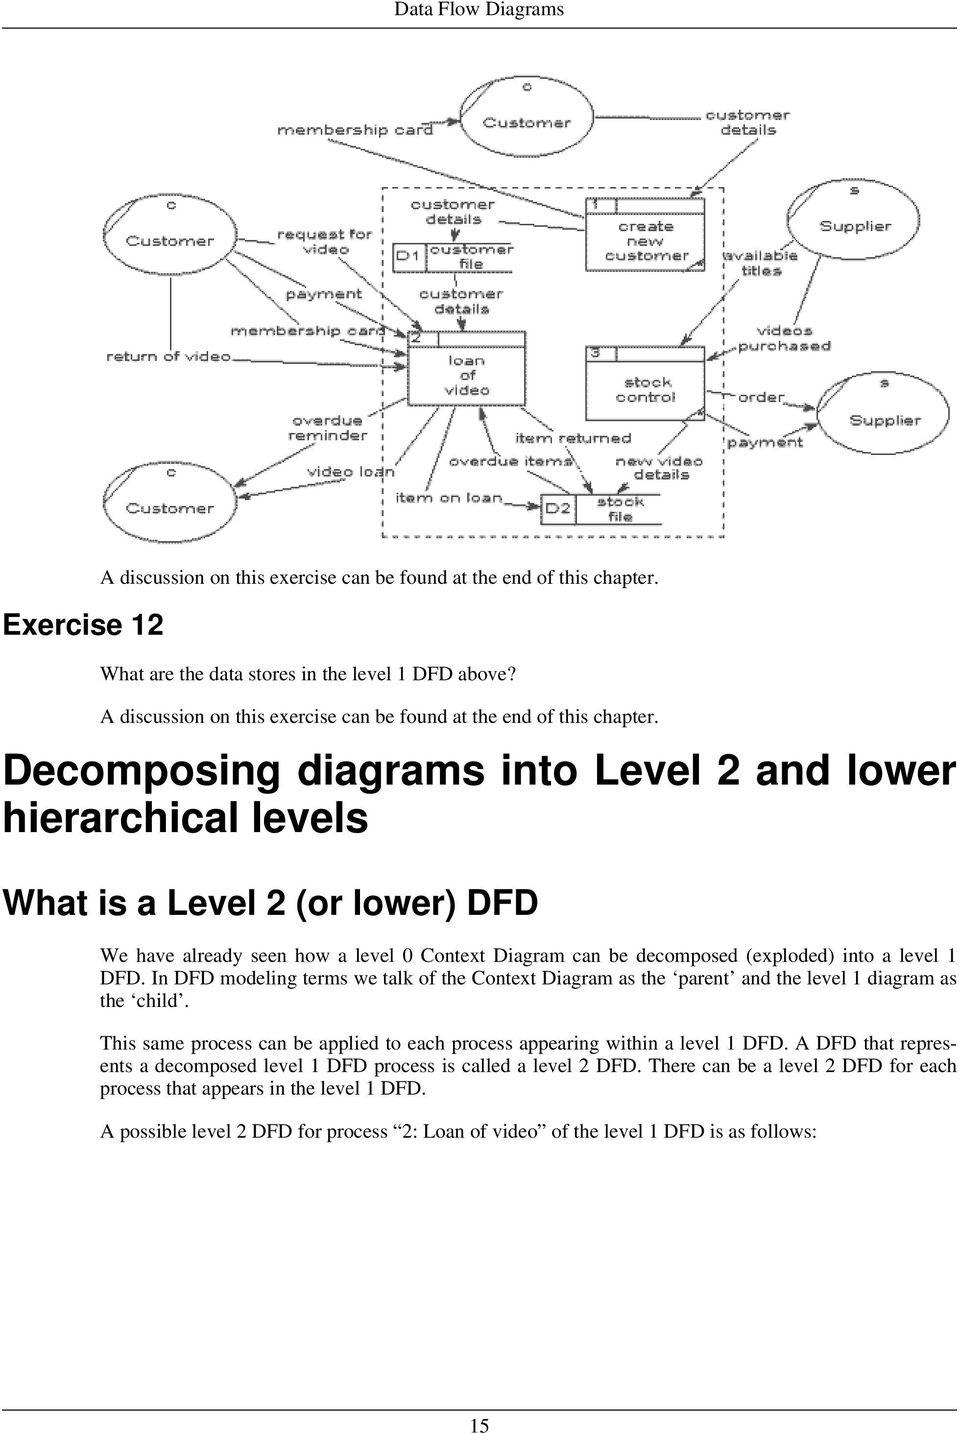 medium resolution of decomposing diagrams into level 2 and lower hierarchical levels what is a level 2 or